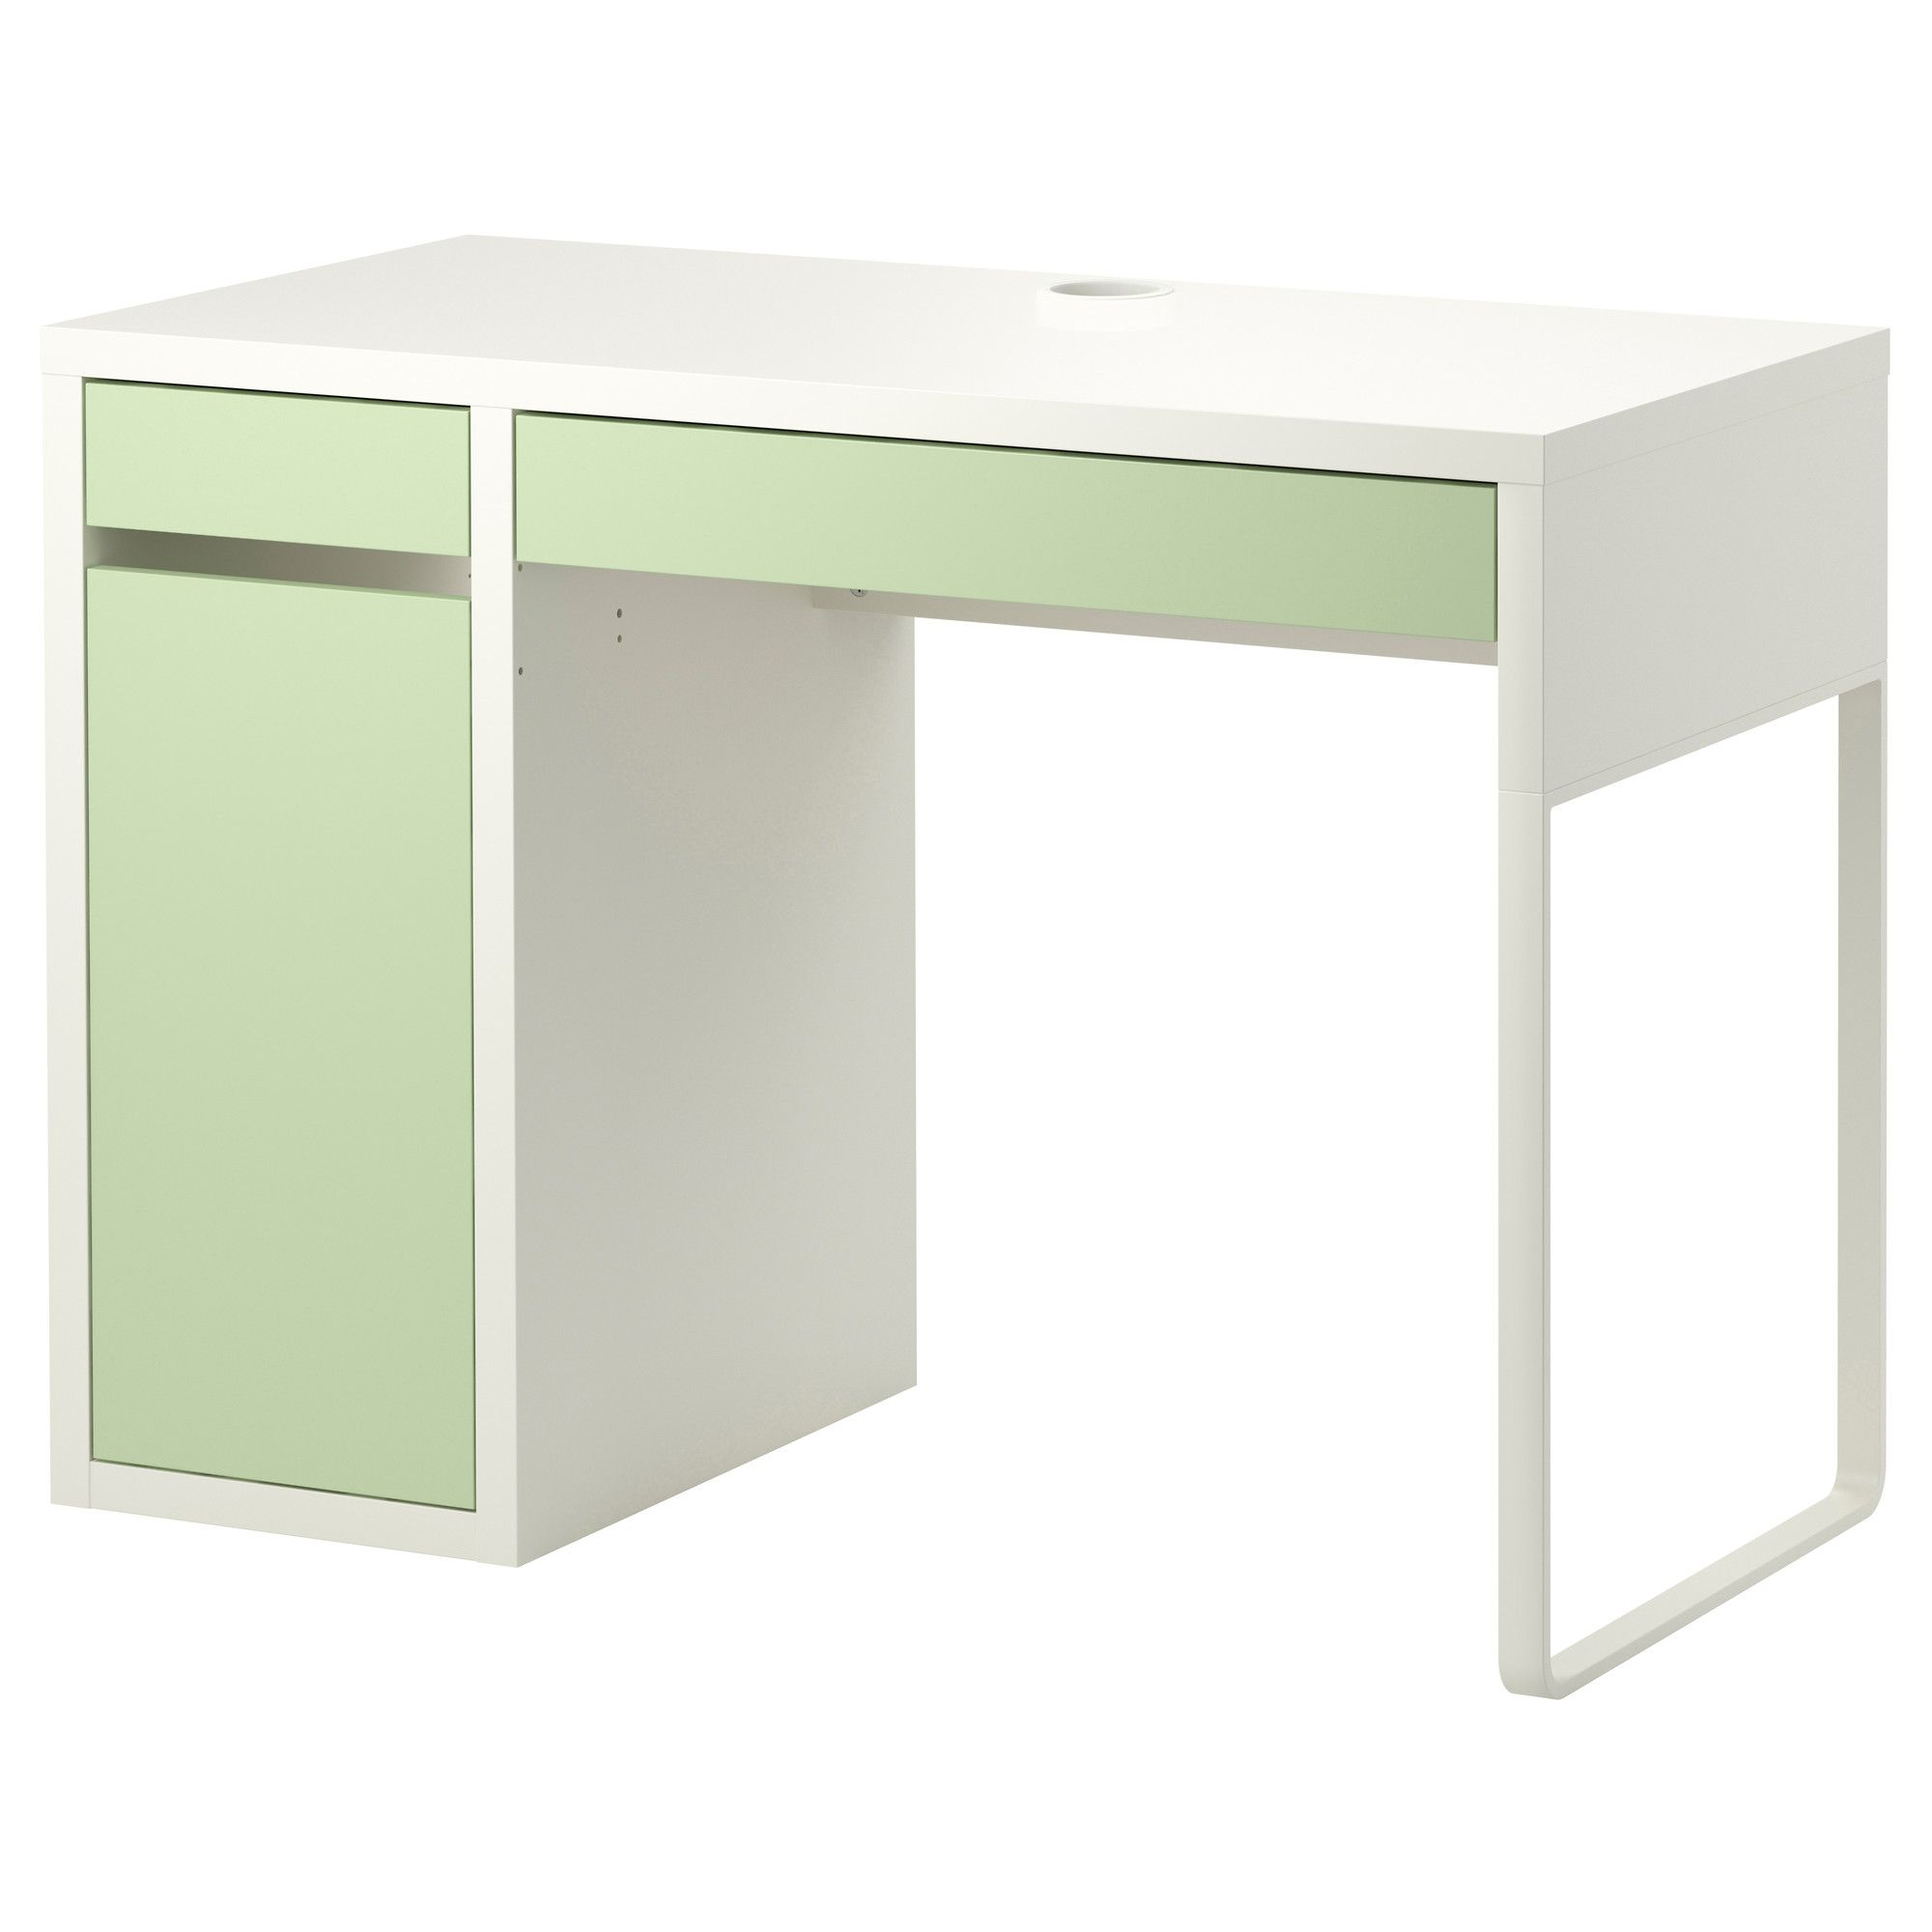 micke bureau blanc vert clair ikea chambre garcon. Black Bedroom Furniture Sets. Home Design Ideas